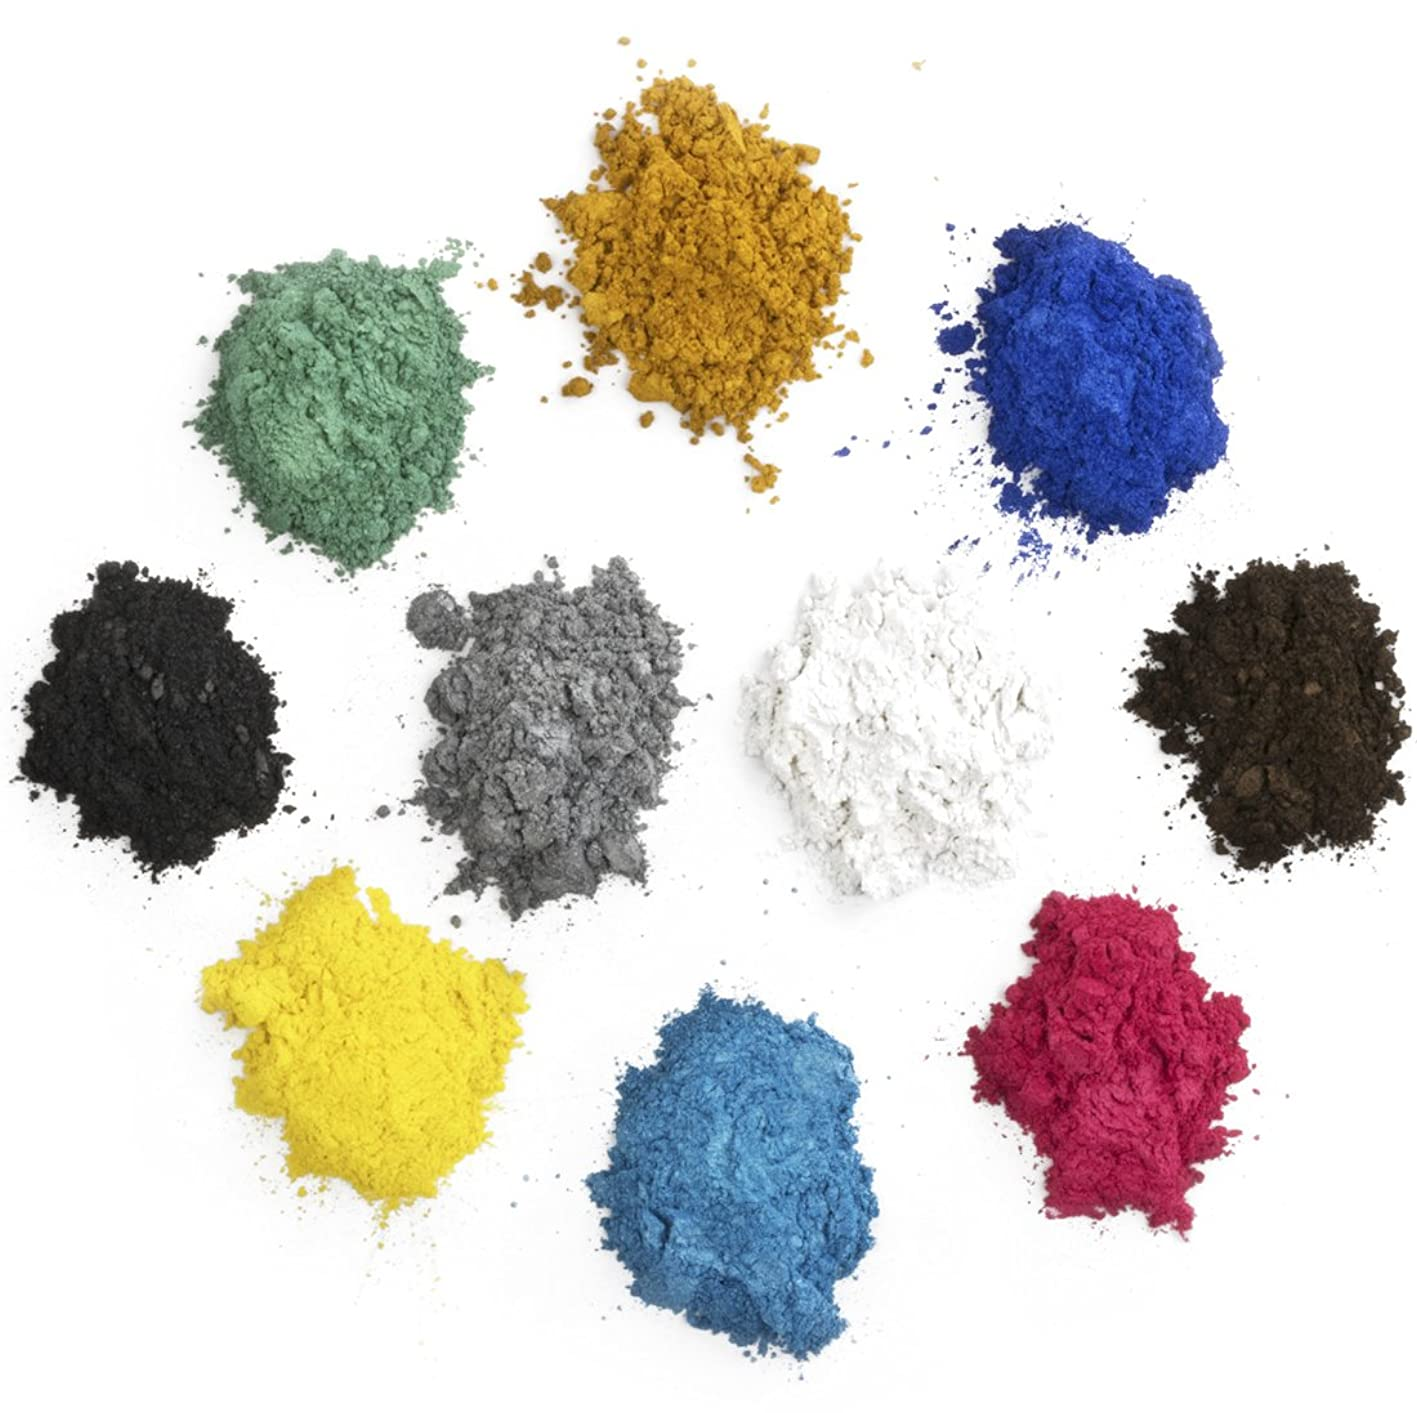 Mica Powder Set Includes More Pigment of 10 Beautiful Colors for Use as an Epoxy Resin Color Pigment, Soap Making Pigment, Resin Dye, Artwork, Crafts and More! 10 Grams of Each Color Pigment Powder ubfhvbewkqi326